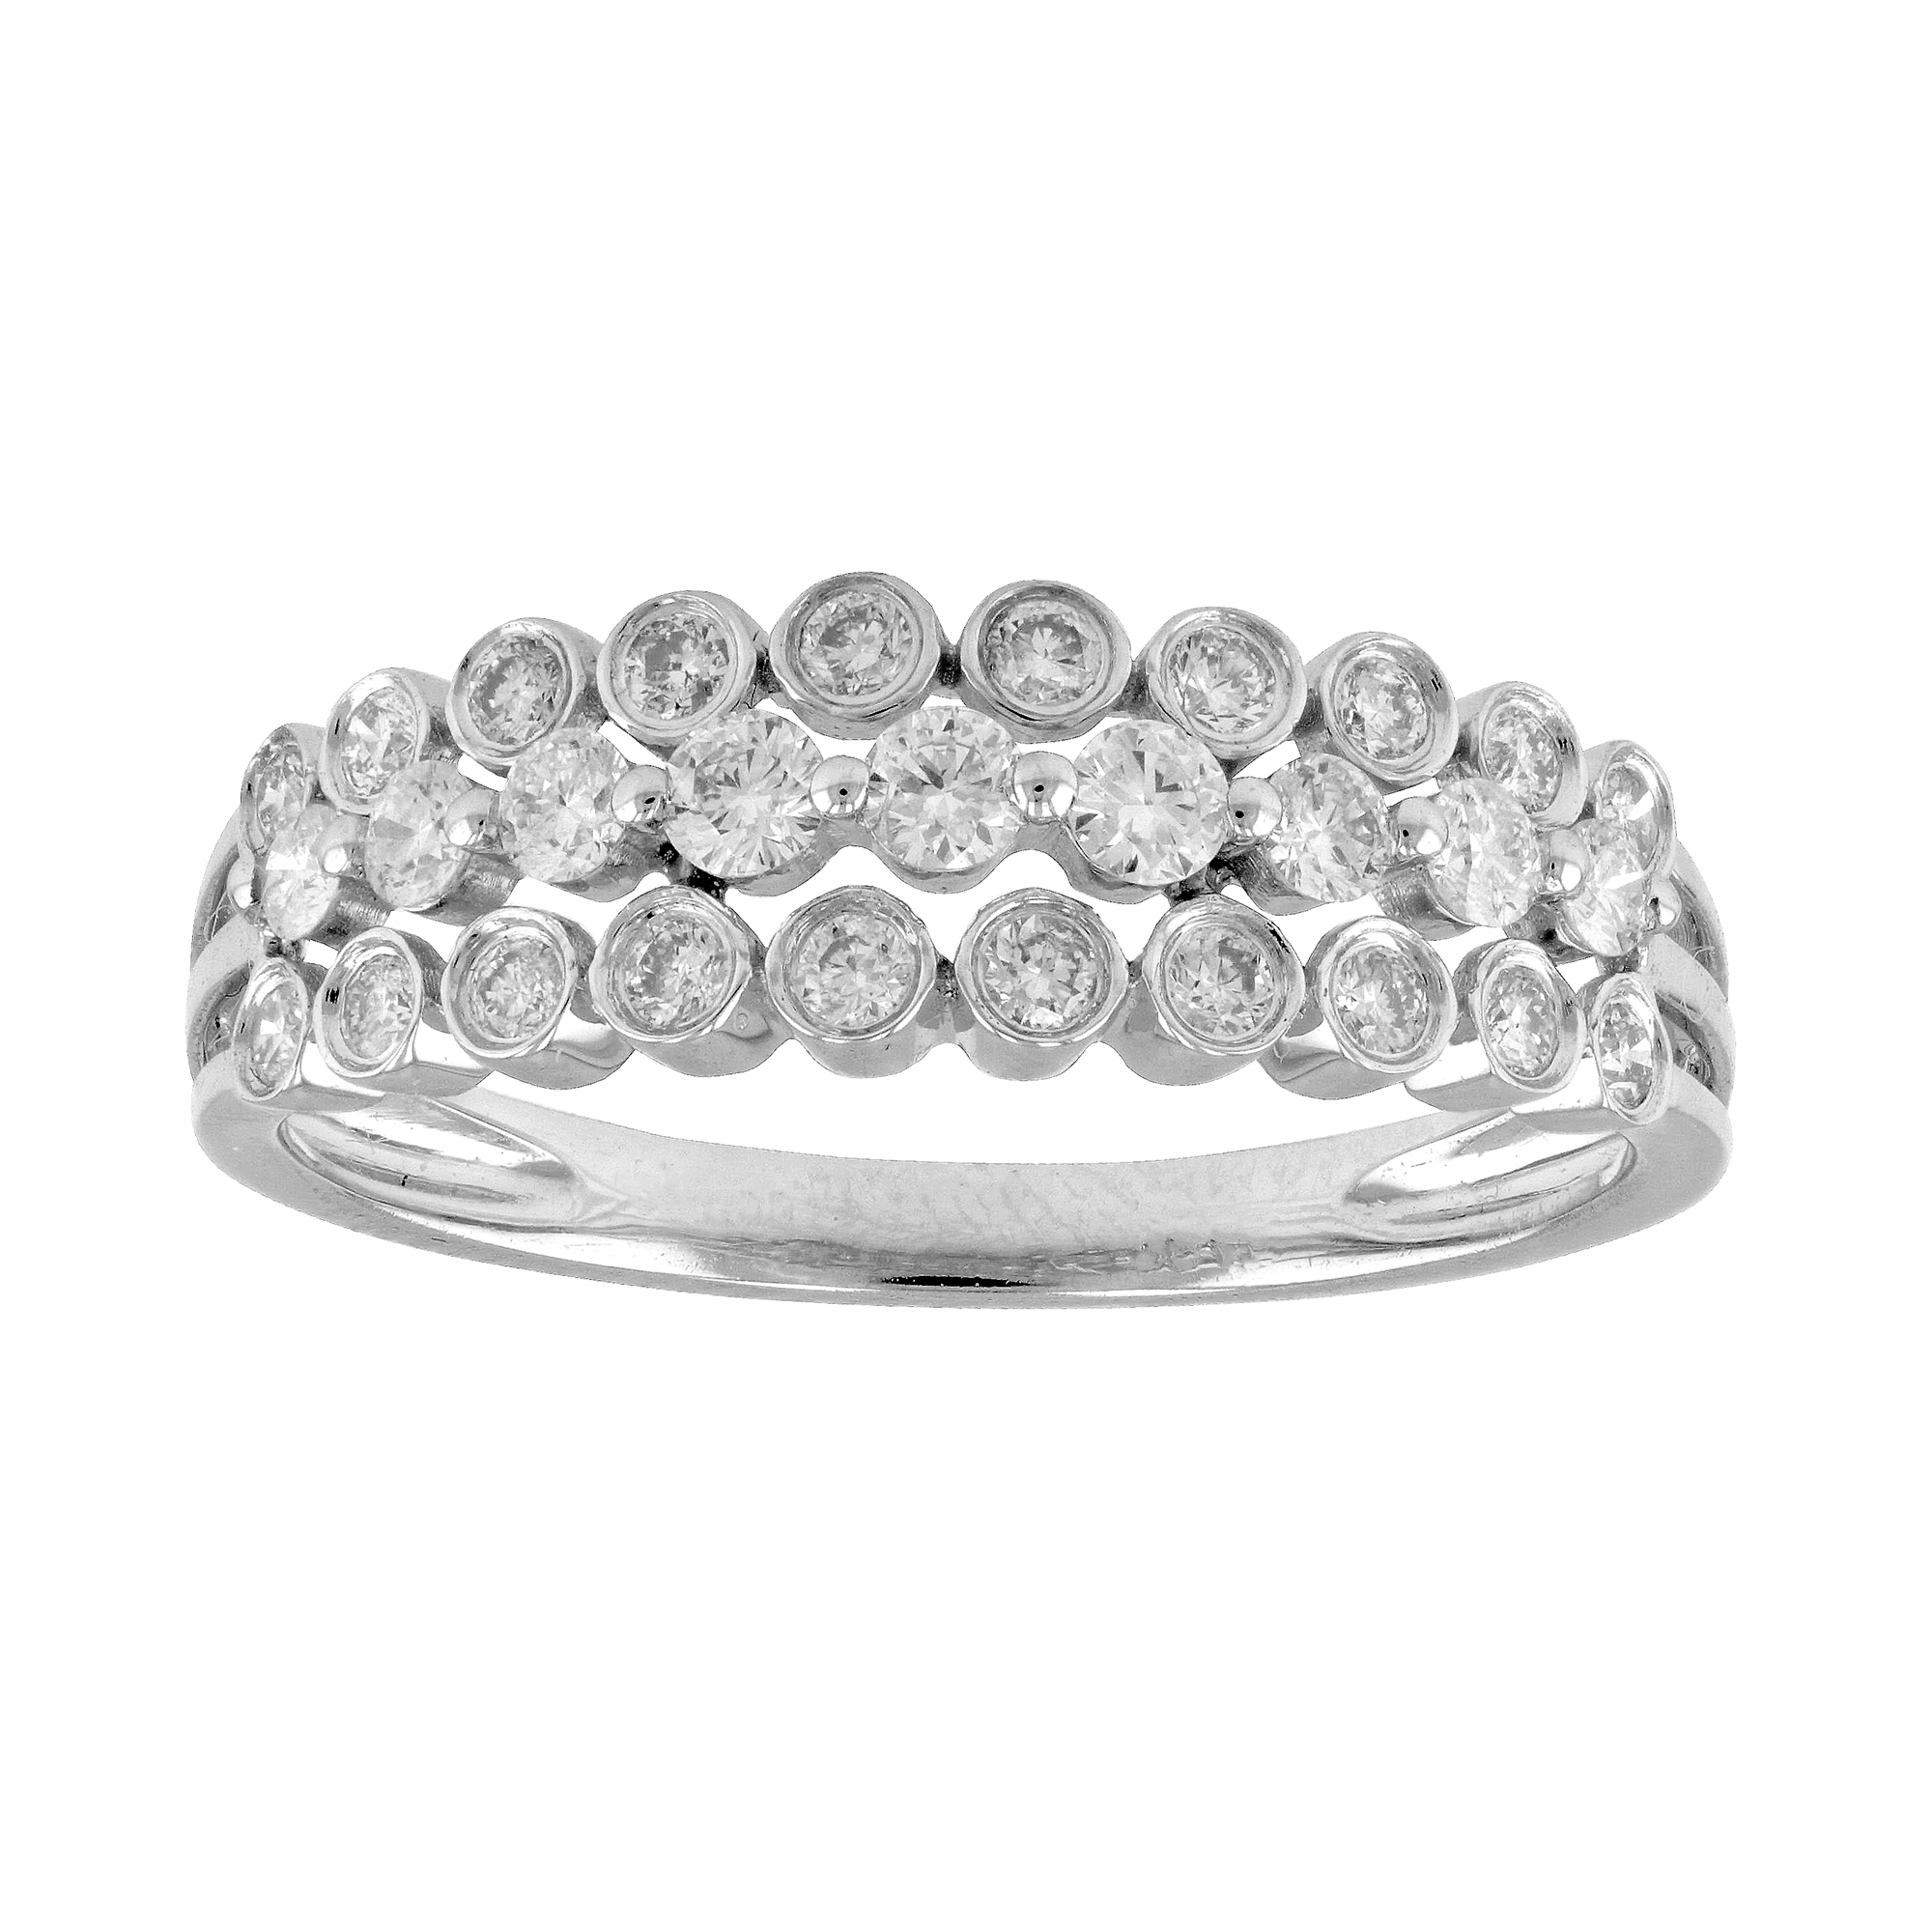 View 0.53ctw Diamond Band in 18k White Gold